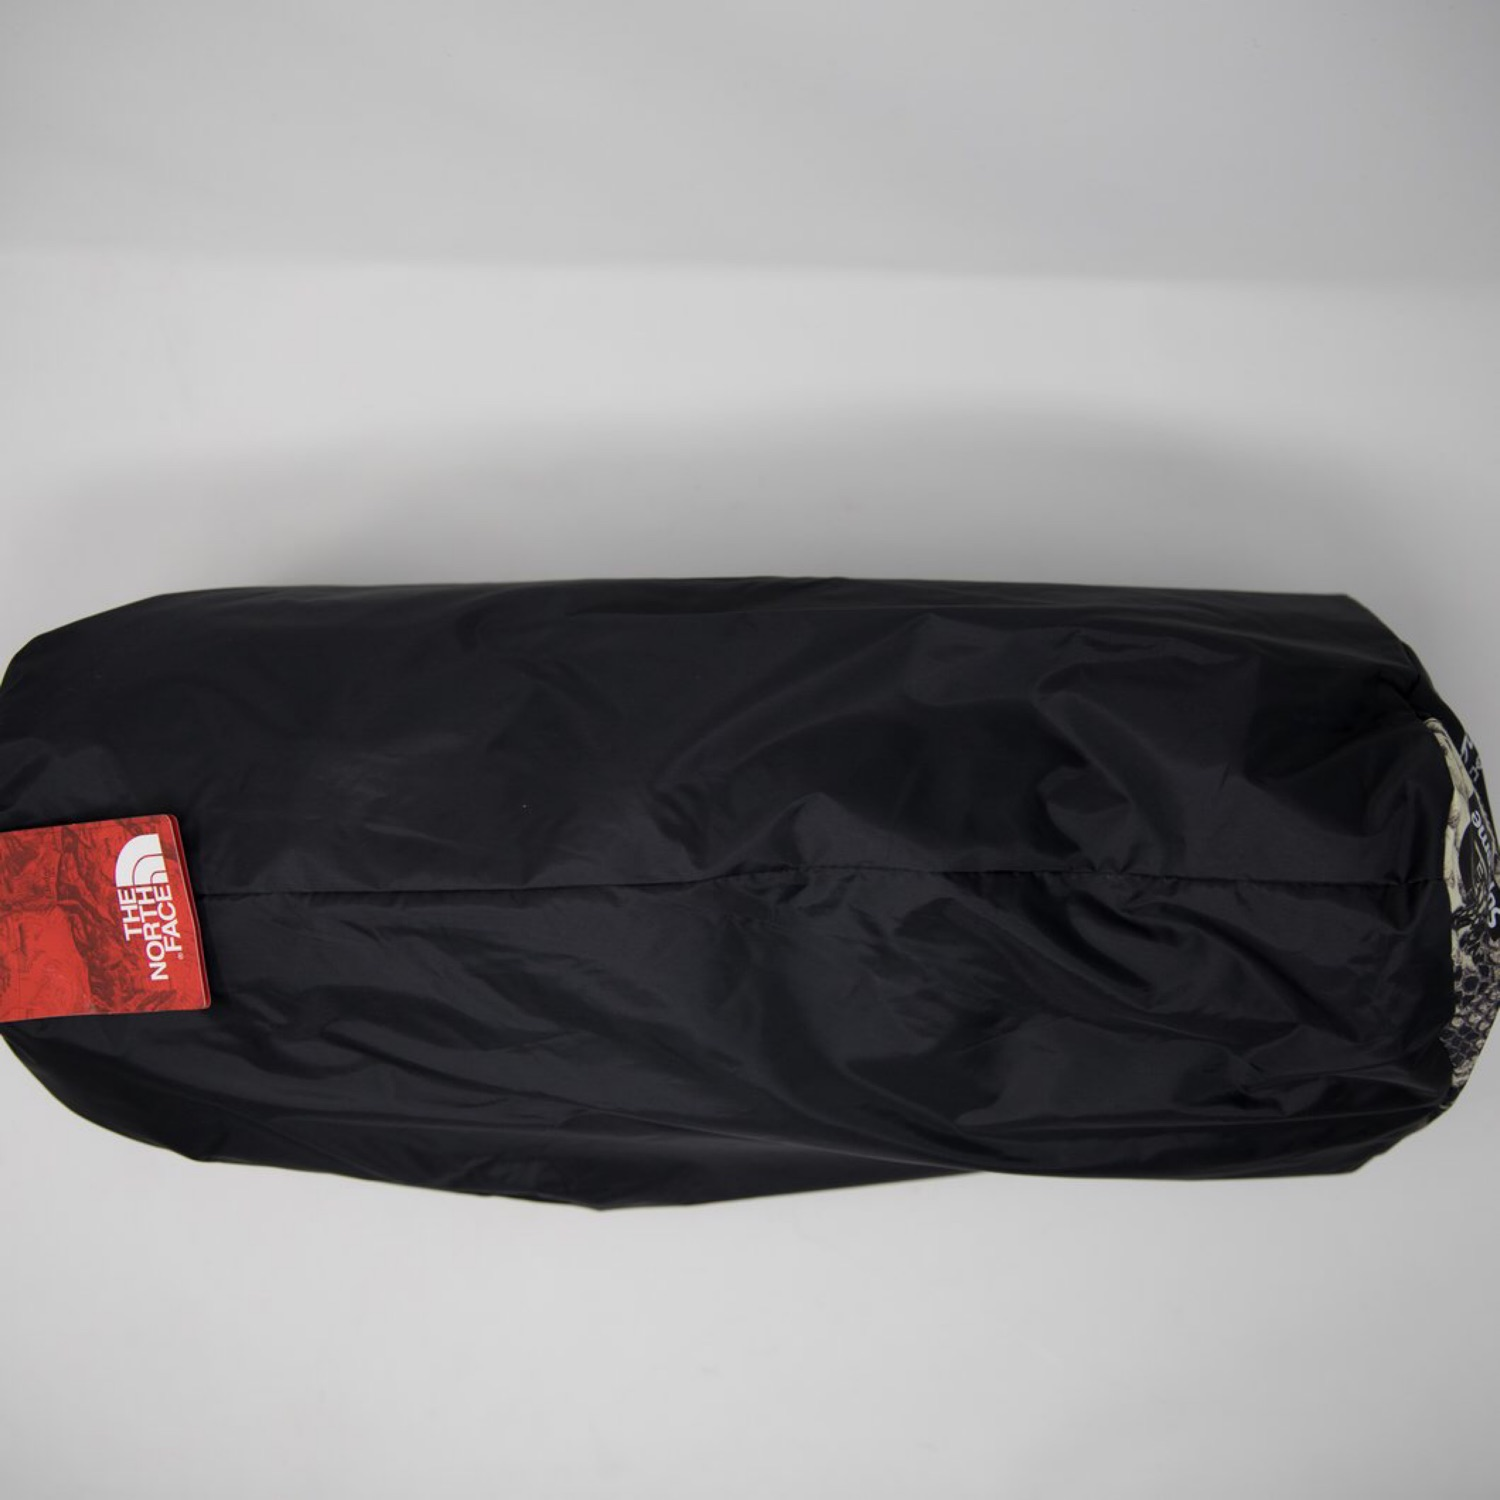 Supreme The North Face Snakeskin Stormbreak Tent 3